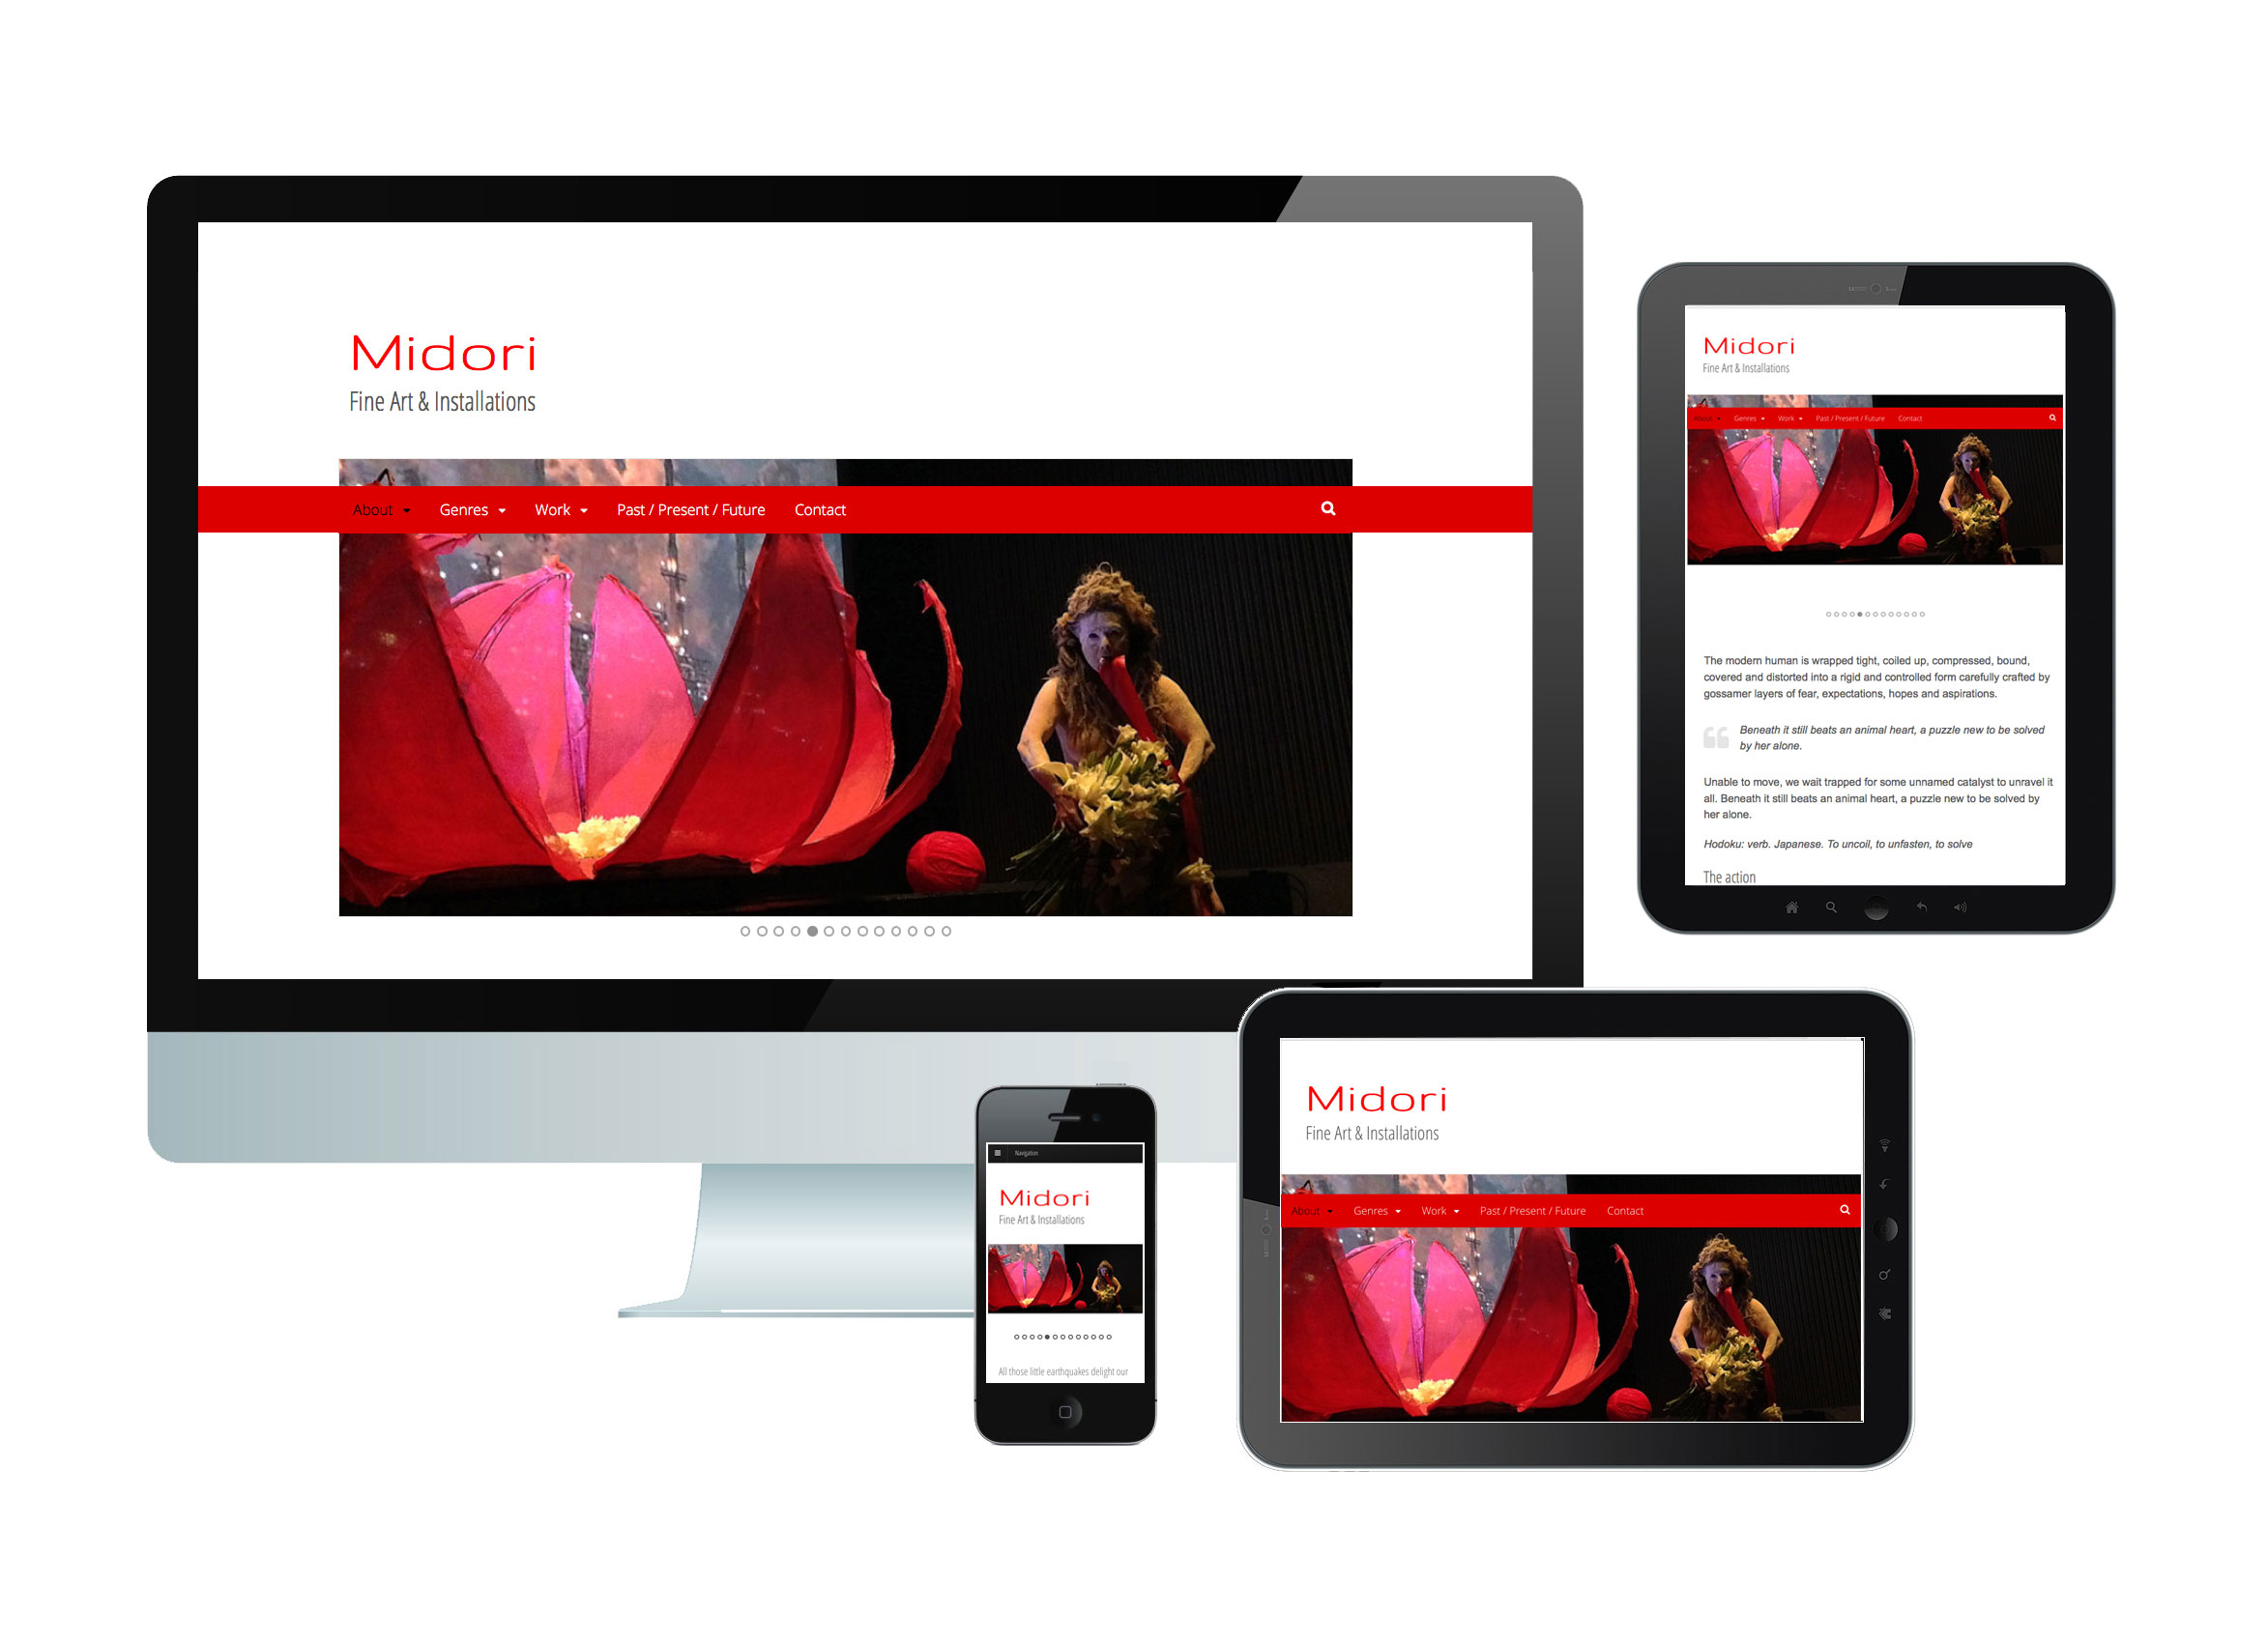 Midori website on mobile, tablet and desktop